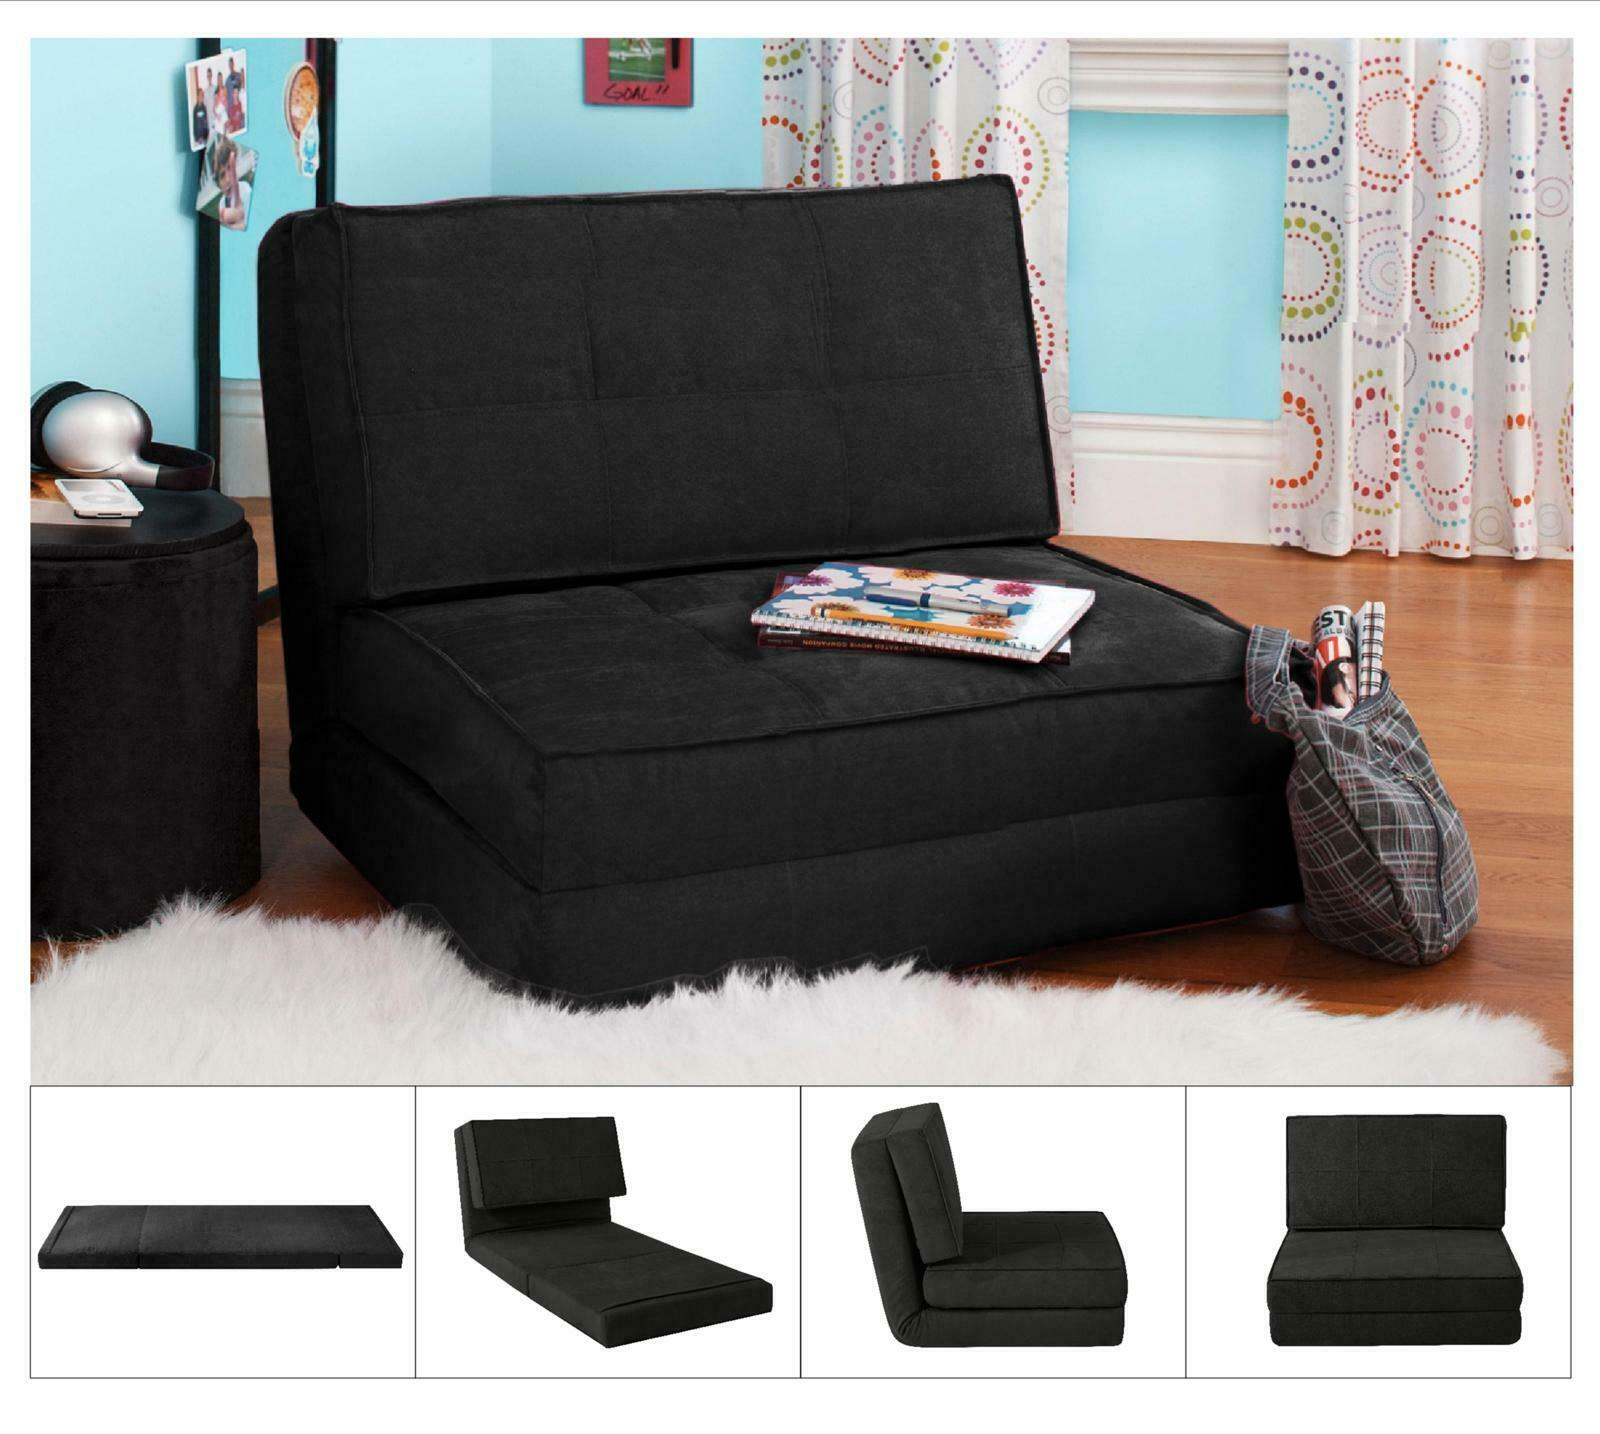 Flip Chair Bed Sofa Convertible Futon Sleeper Couch Dorm Small Room Apartment Us Ebay